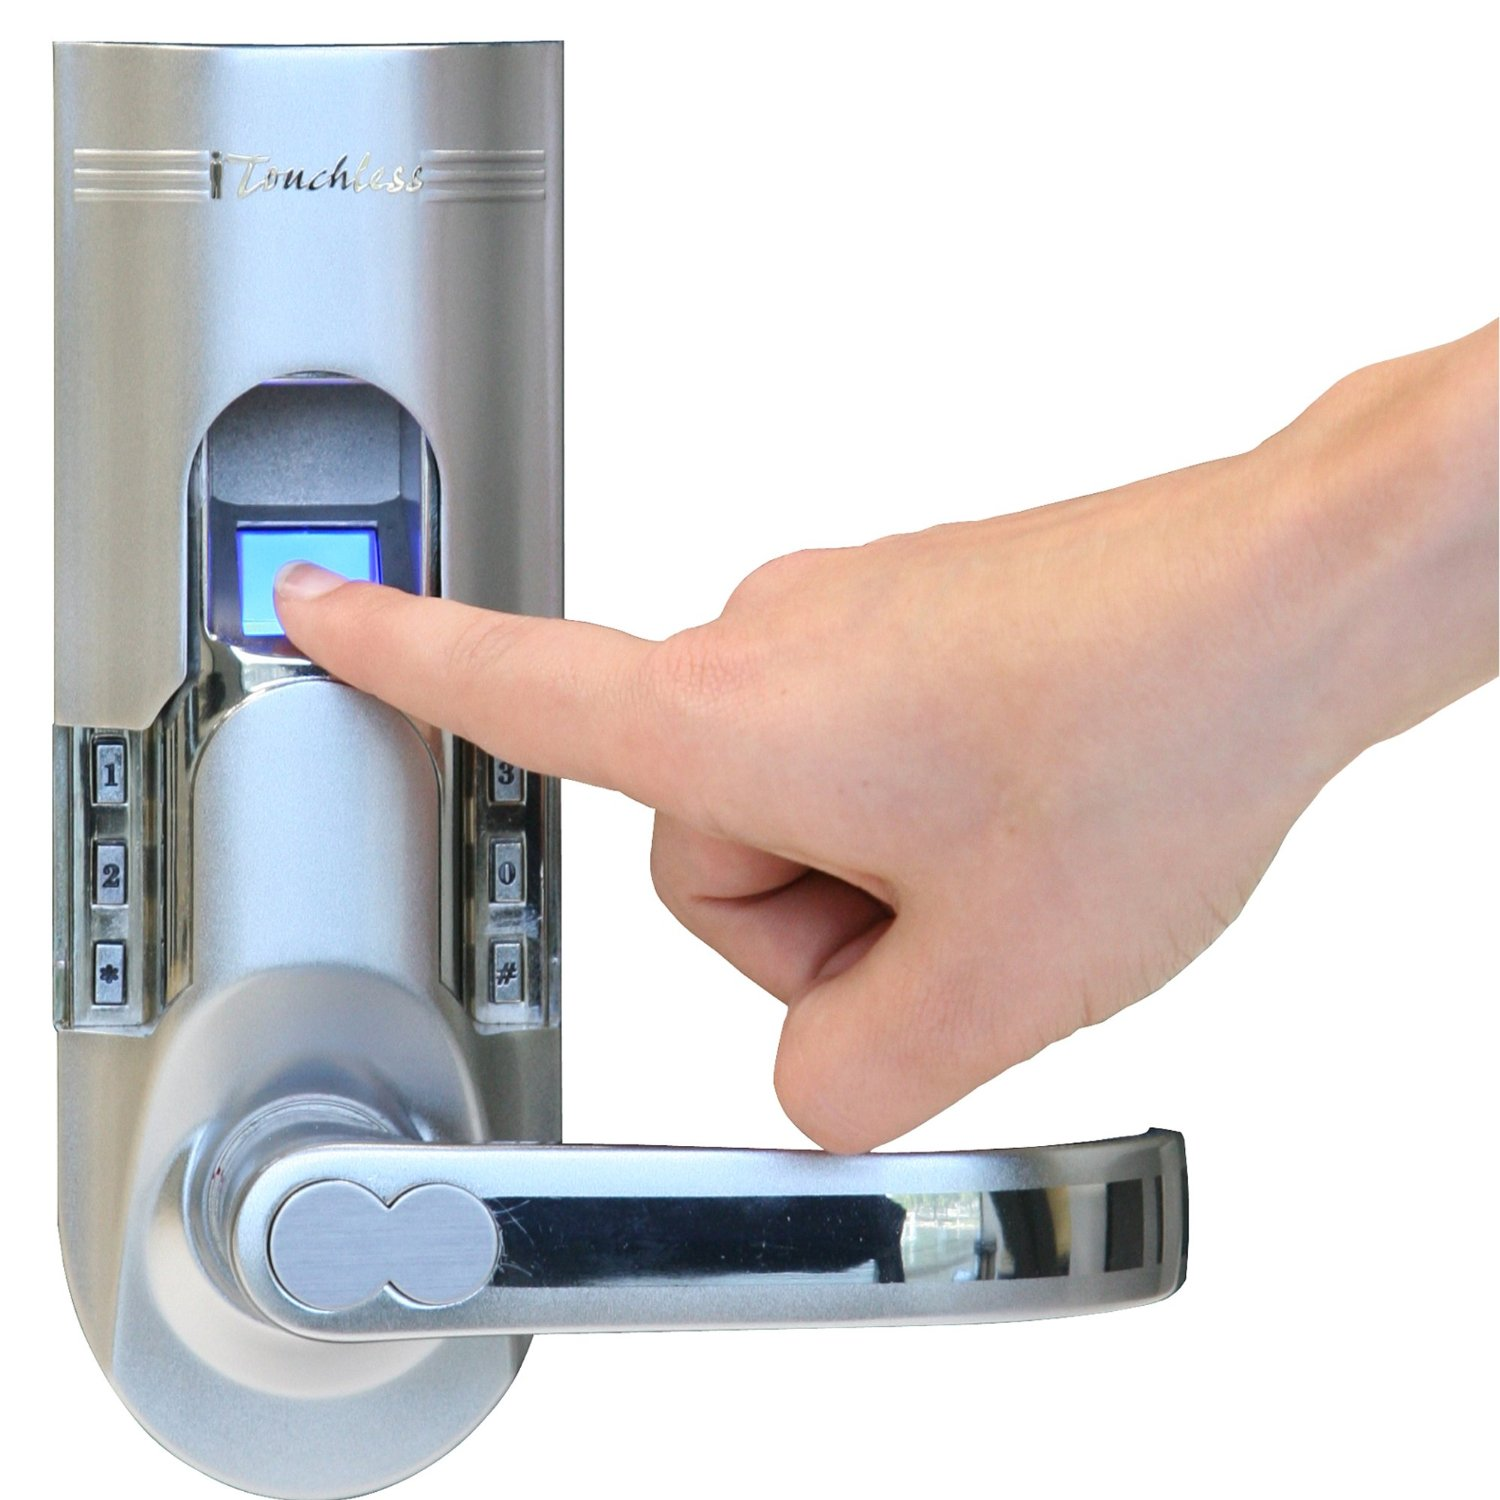 Security with Fingerprint for Your Doors